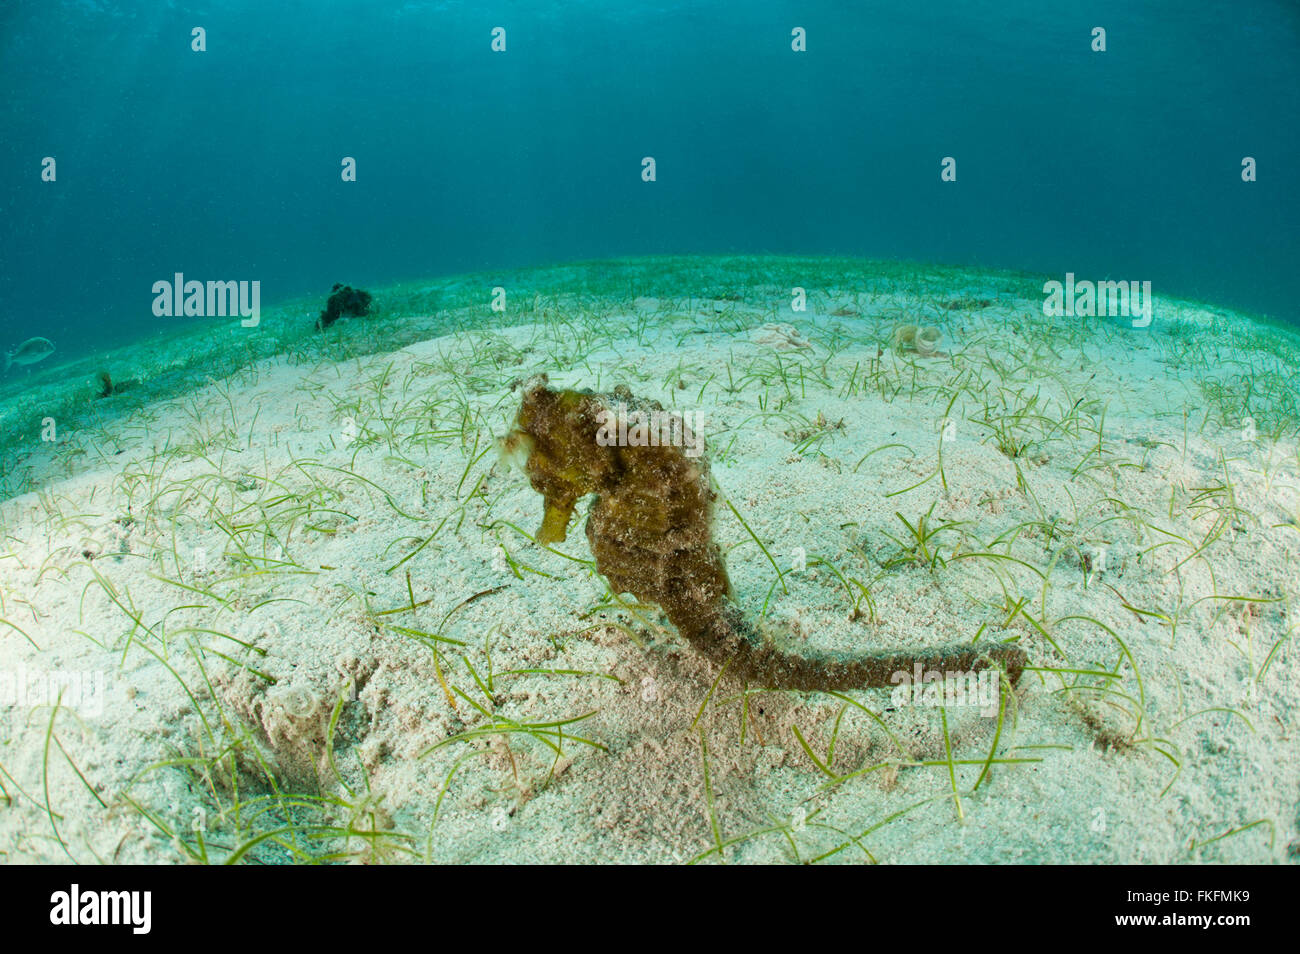 Common seahorse(Hippocampus kuda) in the sandy seagrass. - Stock Image